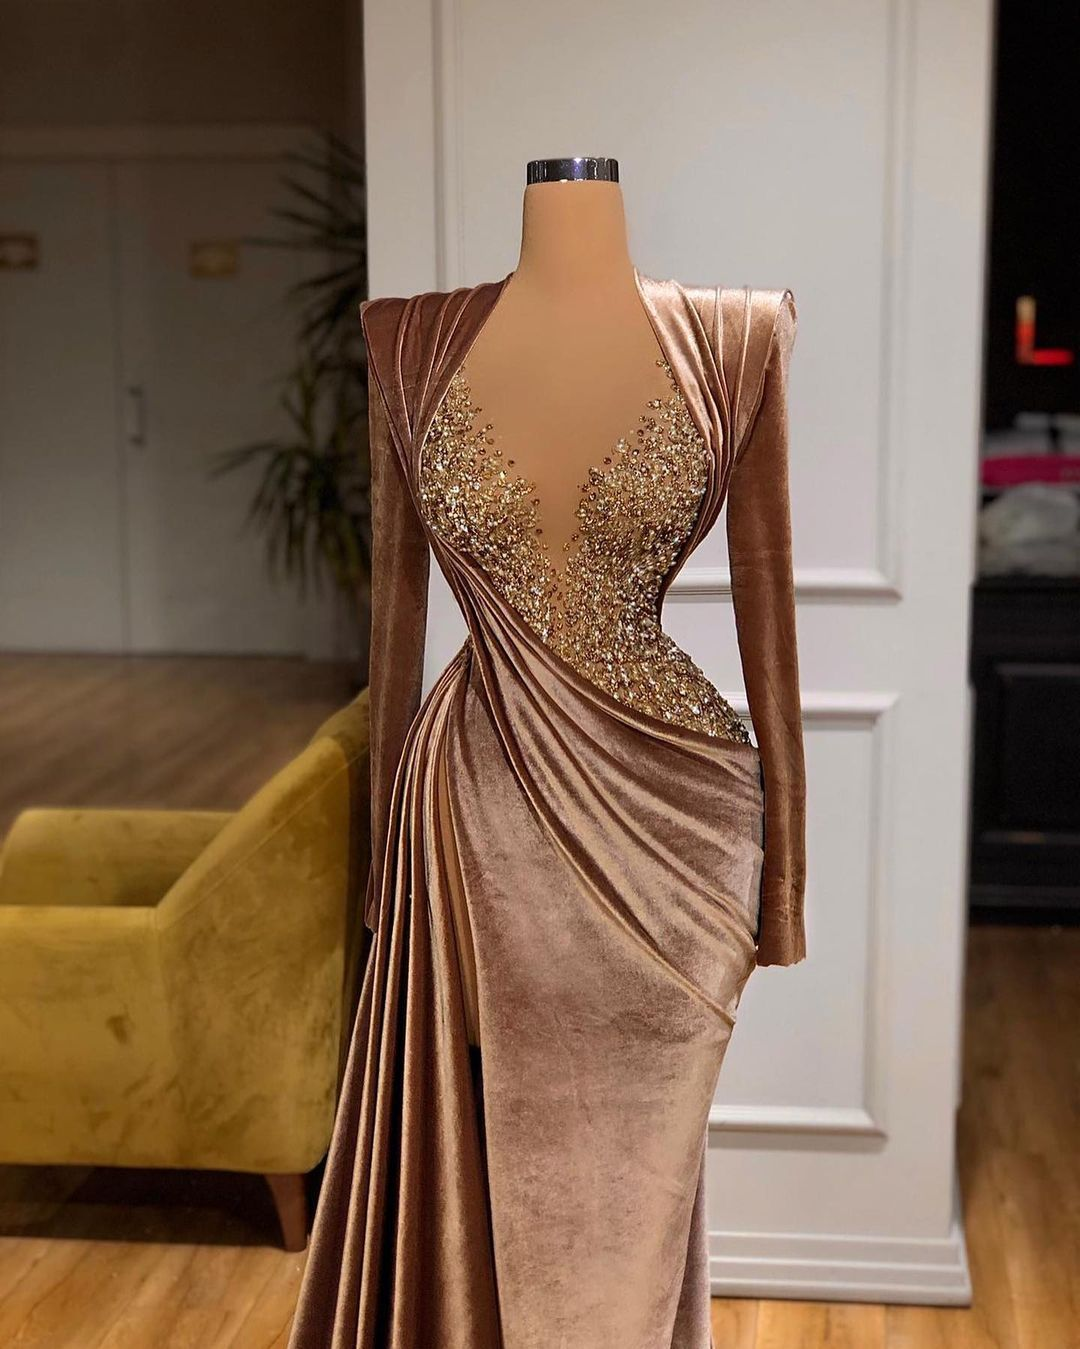 Stunning Valdrin Sahiti Custom Couture Gown Find The Perfect Gown With Pageant Planet Browse All Of Our Beaut Ellegant Dresses Prom Girl Dresses Glam Dresses